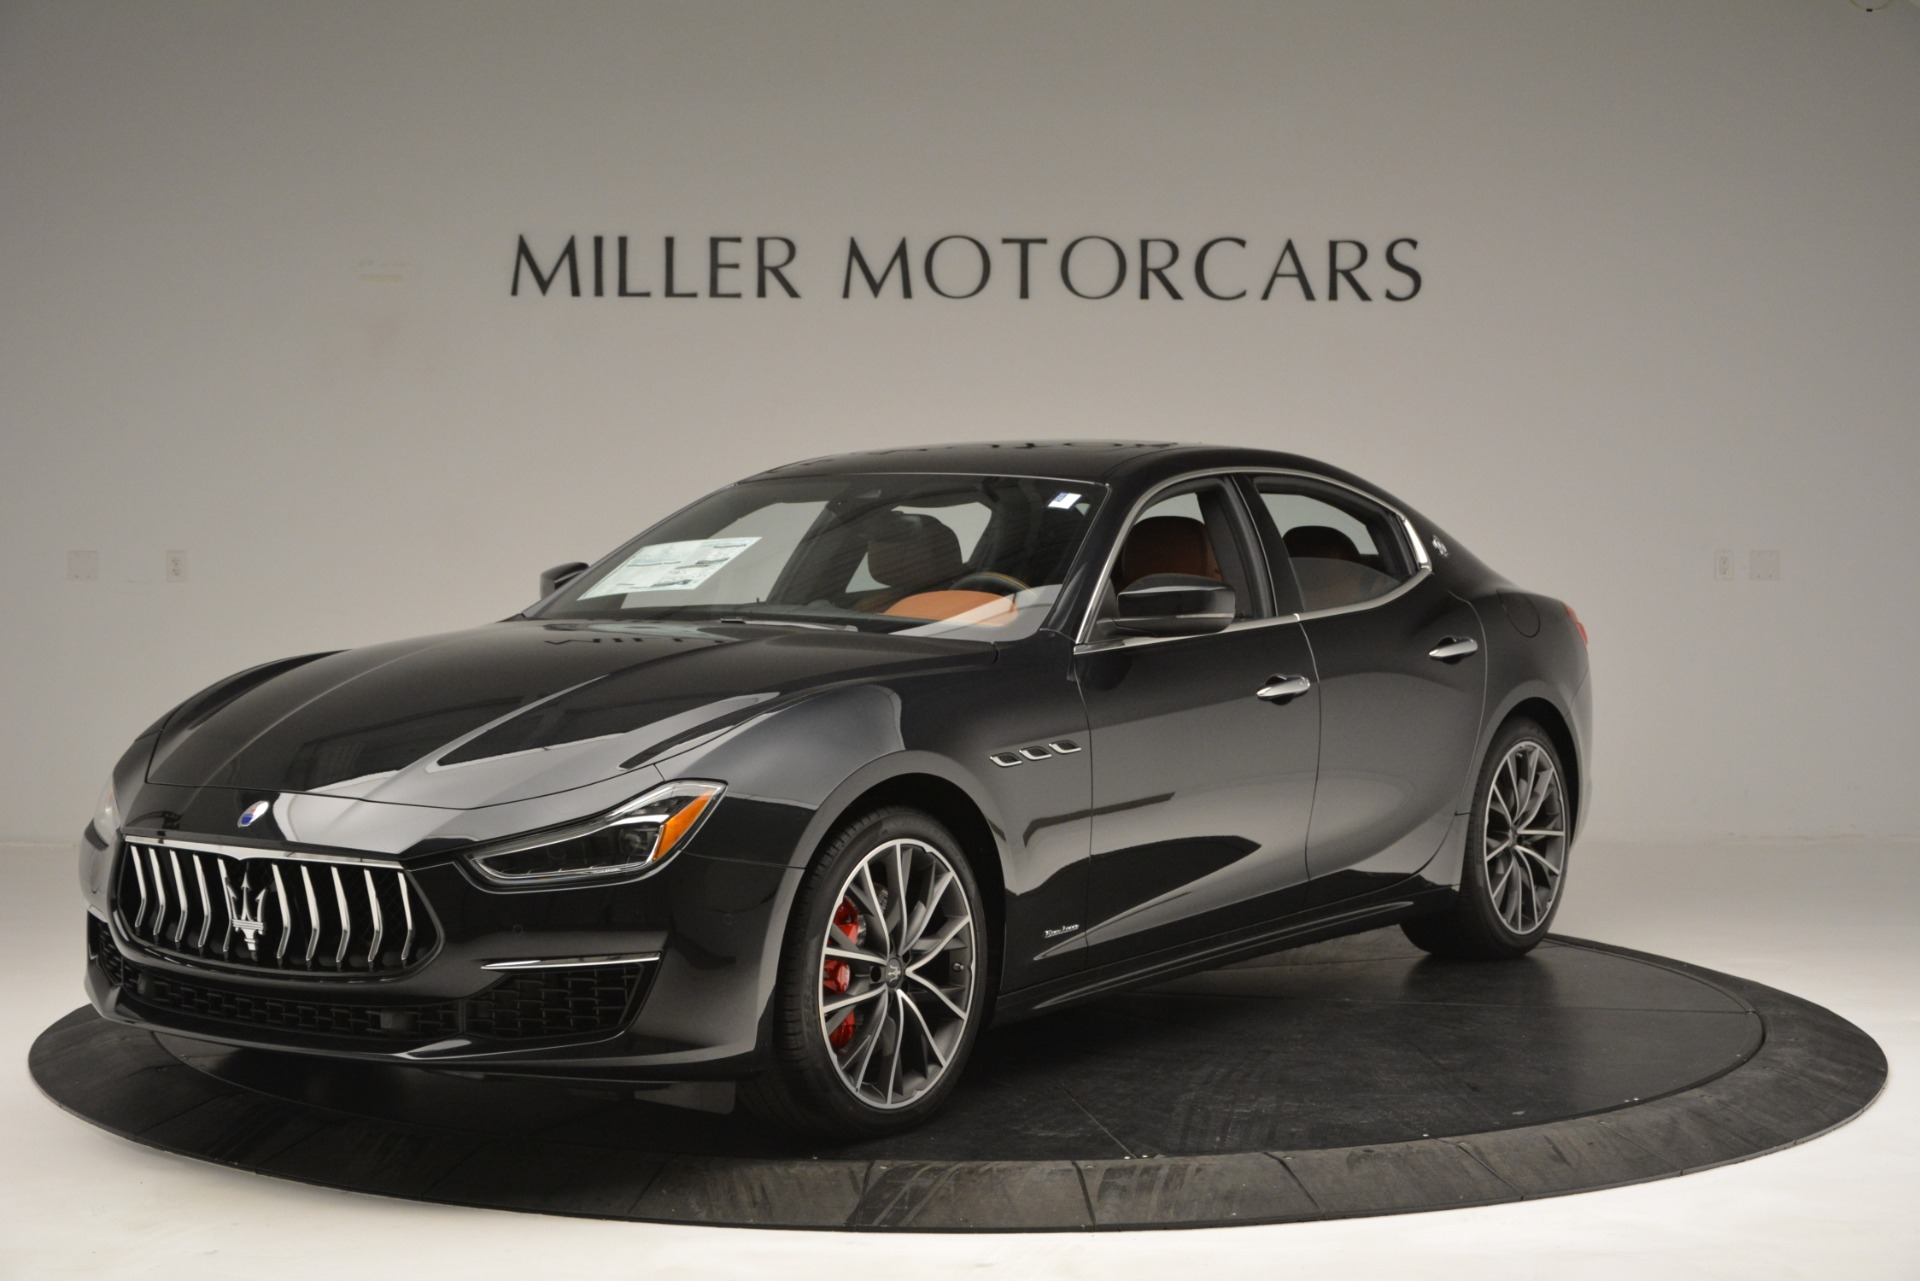 New 2019 Maserati Ghibli S Q4 GranLusso For Sale In Westport, CT 2589_p2